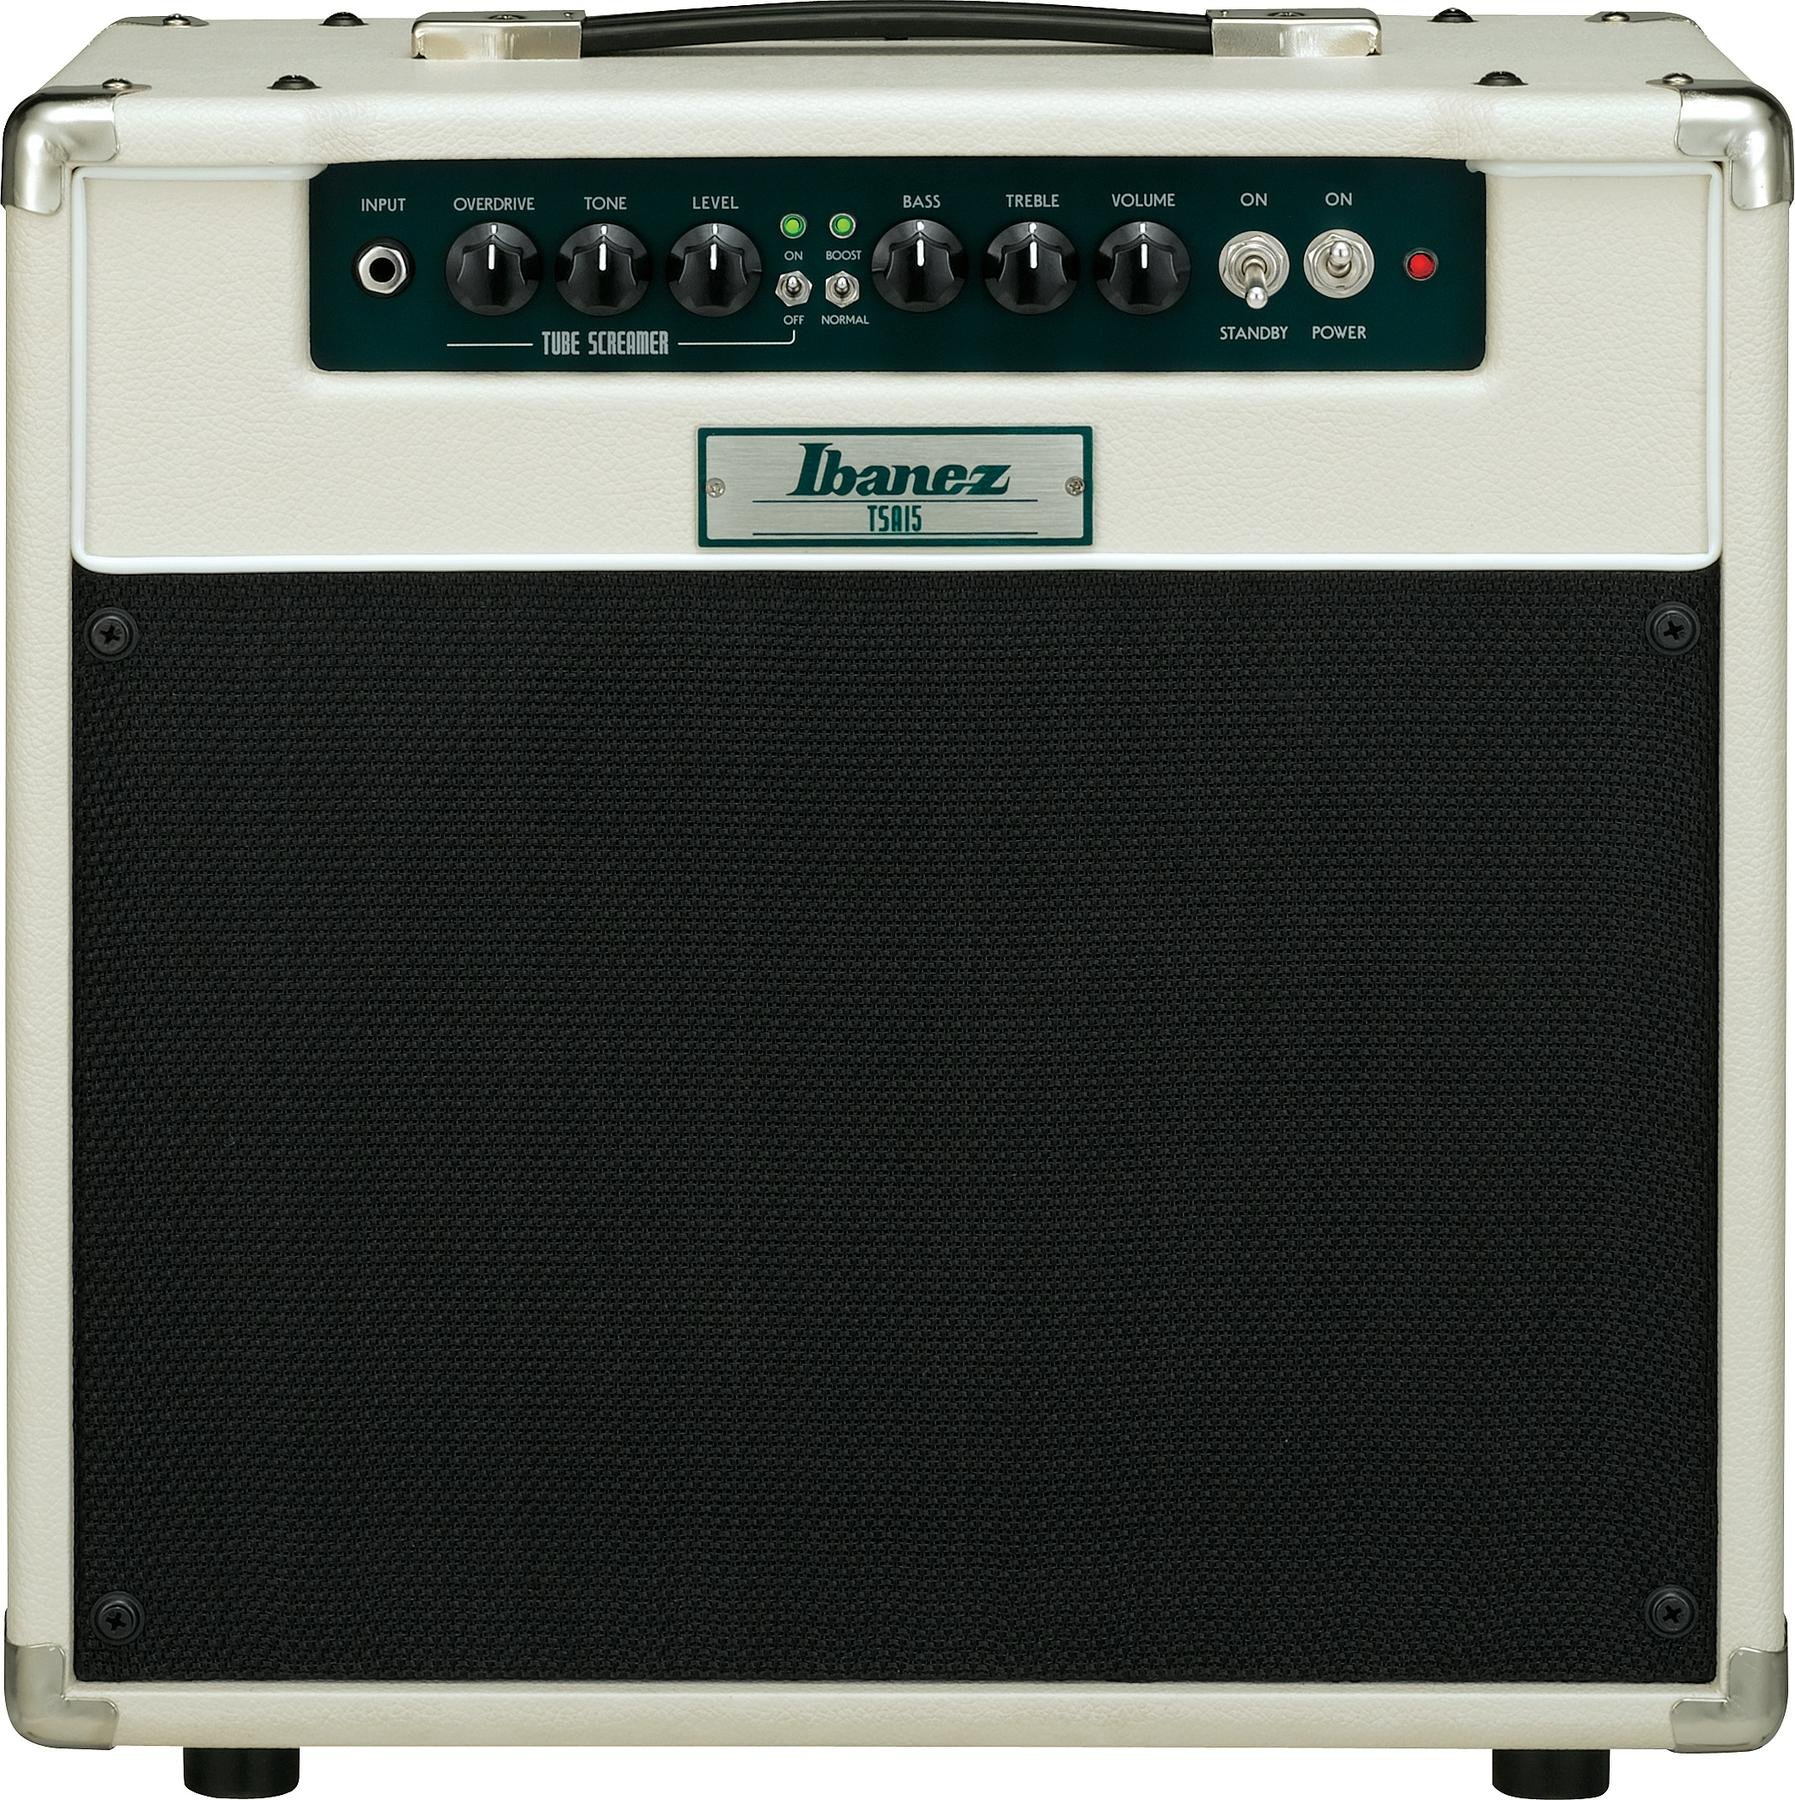 Ibanez Tsa15 15 5 Watt 1x12 Tube Combo Amp Sweetwater Guitar Headphone Circuit Image 1